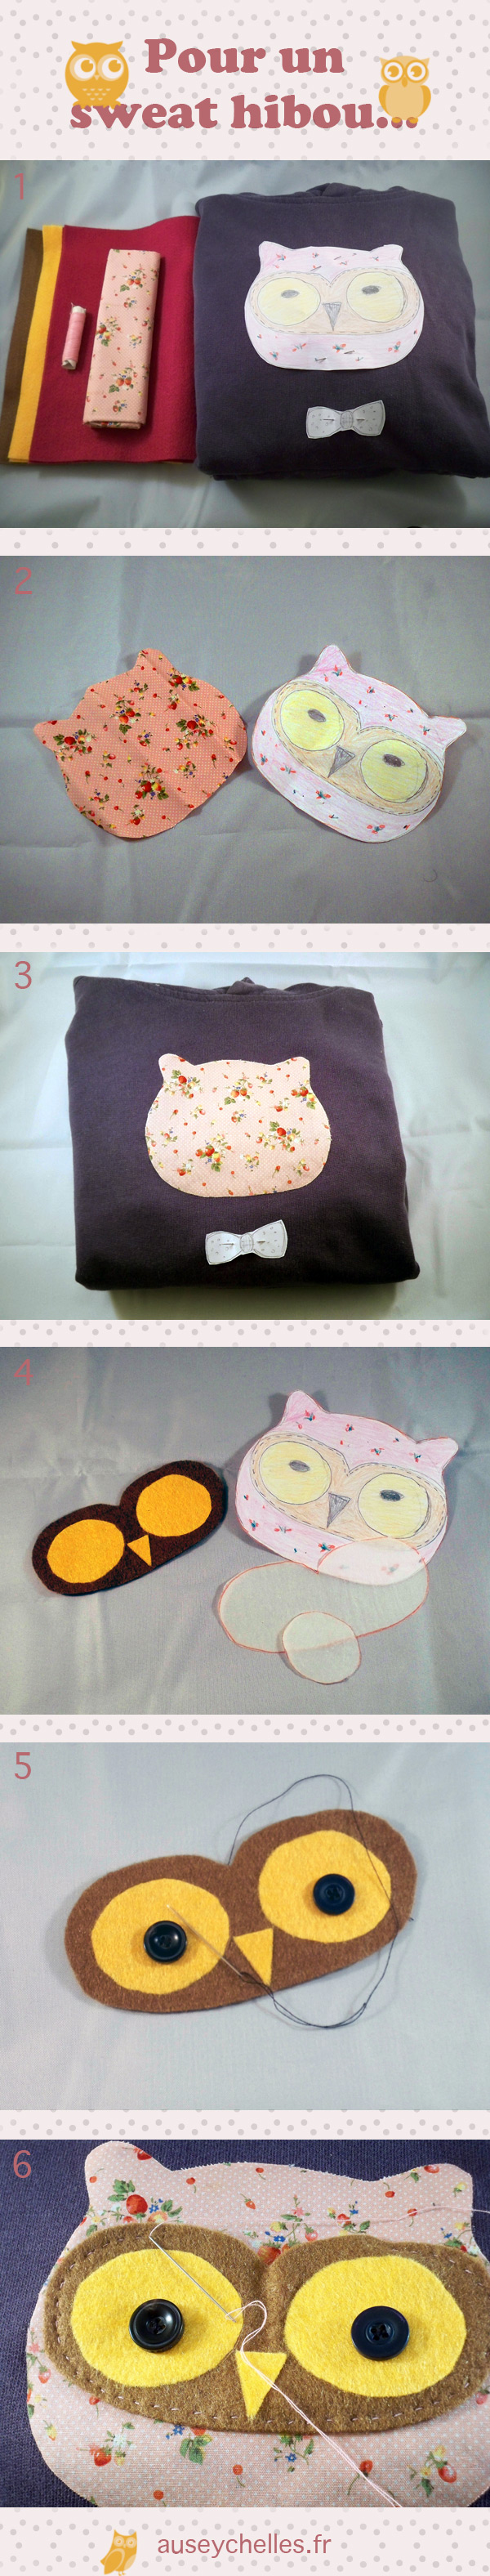 tutoriel sweat hibou